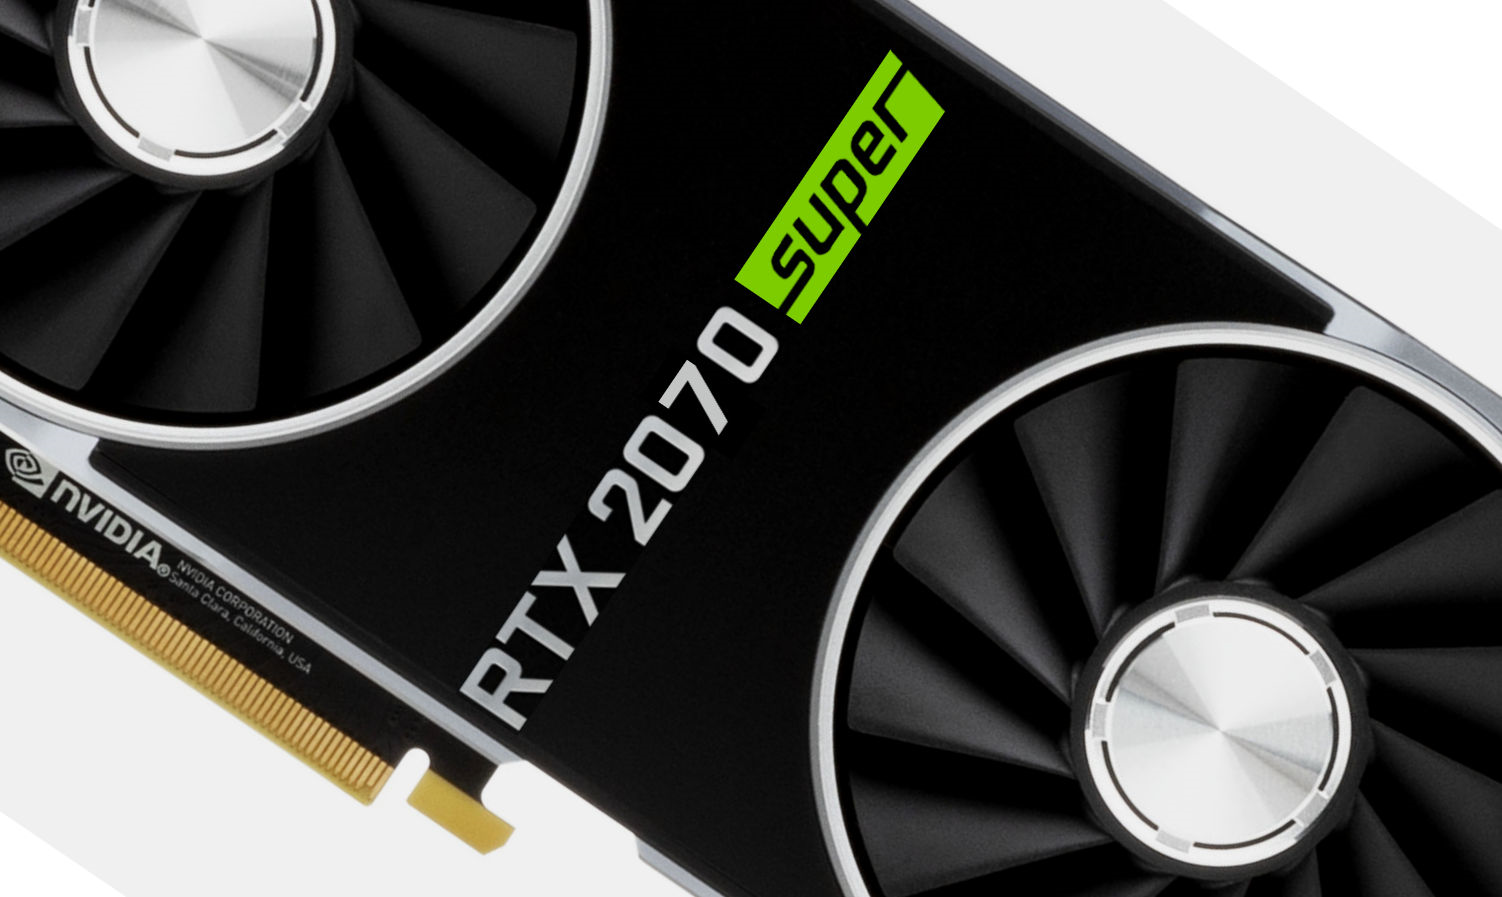 RTX 2060 SUPER and RTX 2070 SUPER edged out by AMD Radeon RX 5700 in